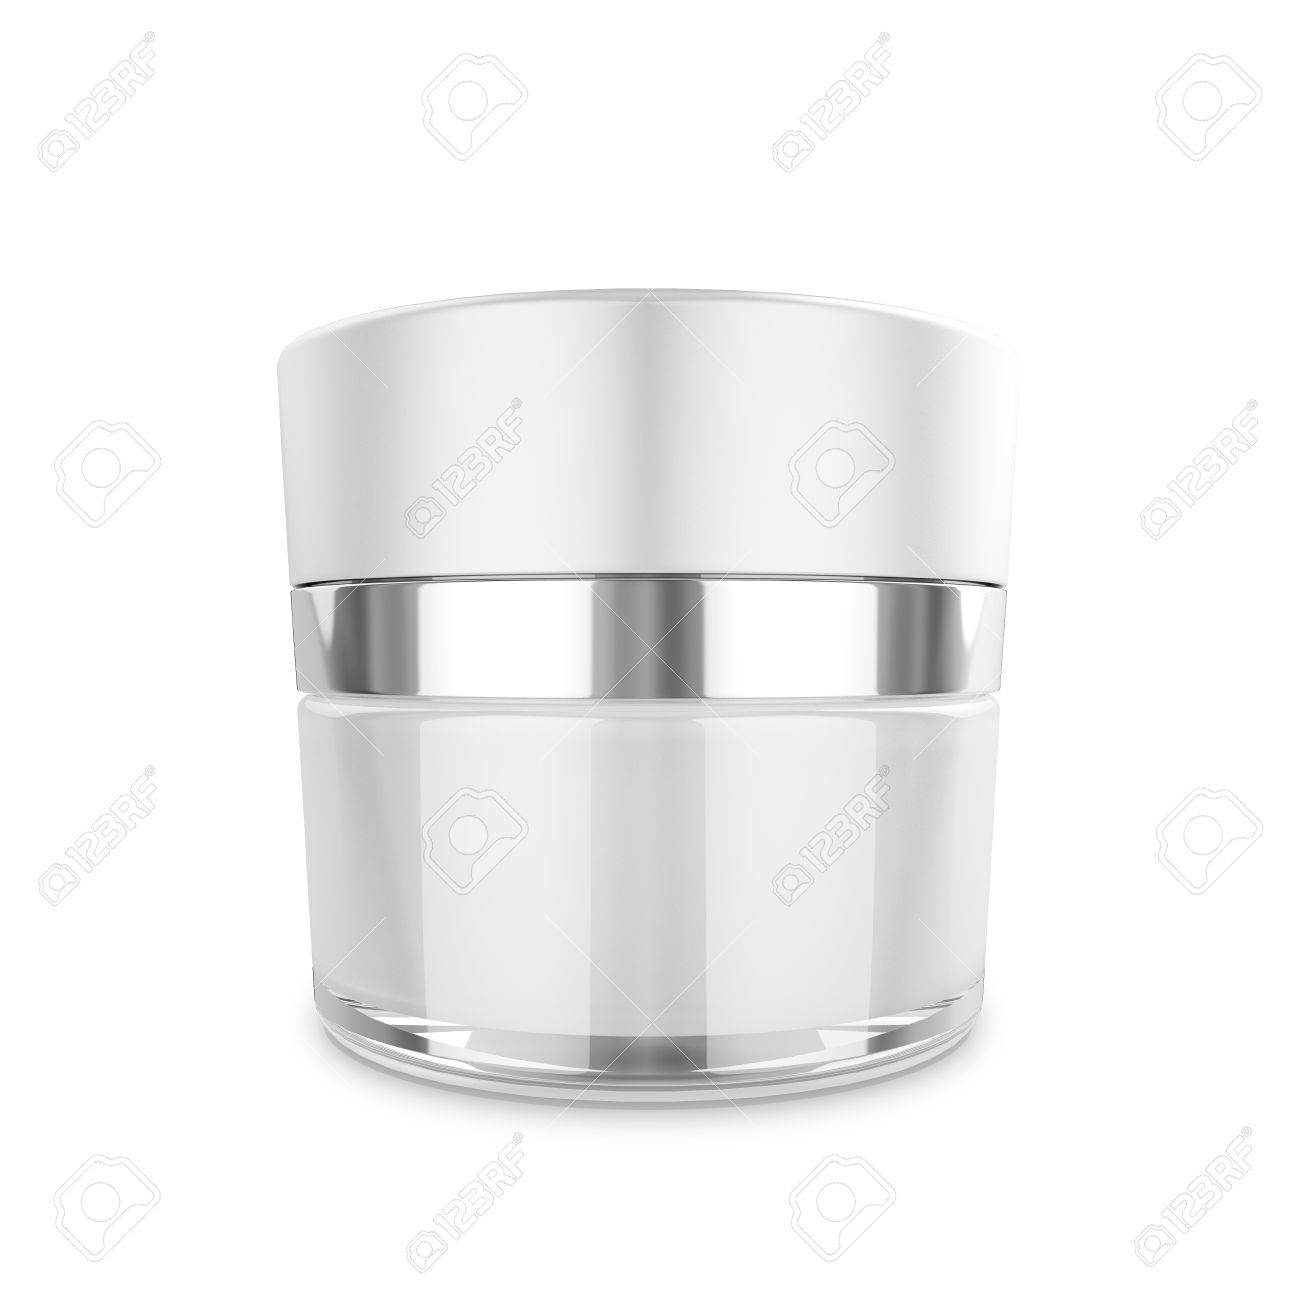 Cosmetic Packaging, Cream, Powder Or Gel Jar Template For Your ...